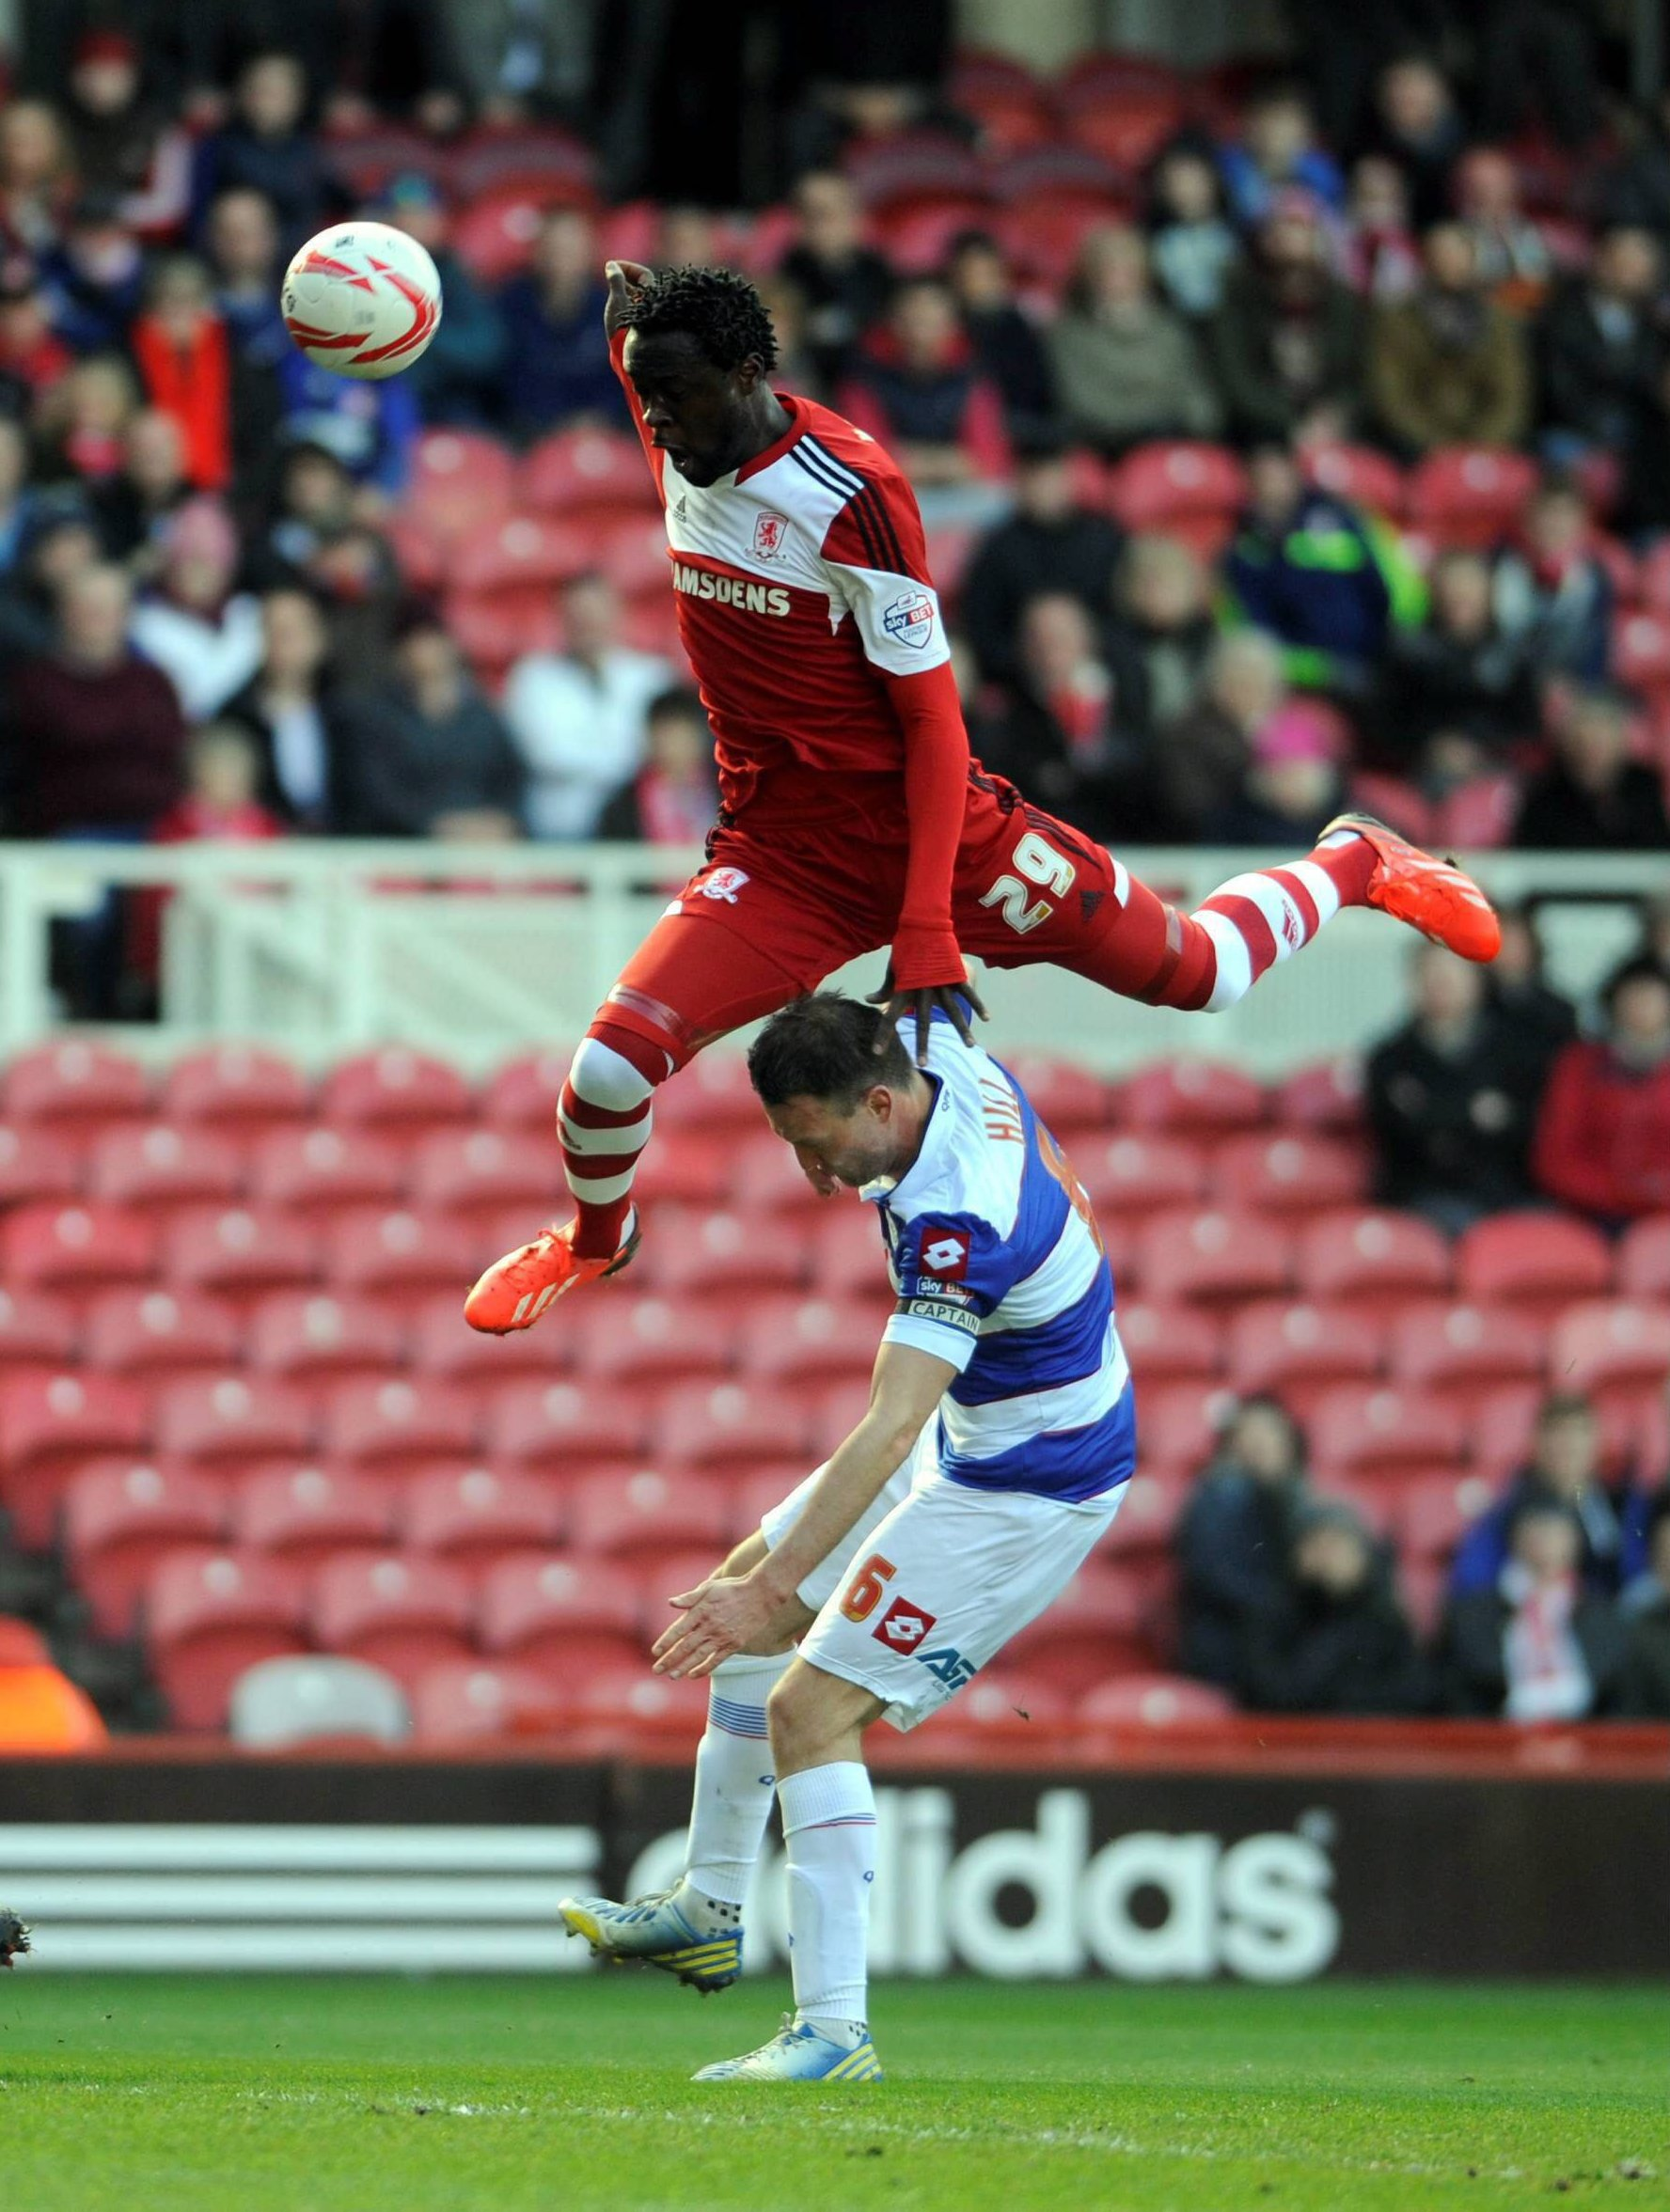 AIR PLAY: Middlesbrough's Kei Kamara leaps over QPR's Clint Hill during the Londoners' 3-1 win on Saturday at the Riverside Stadium